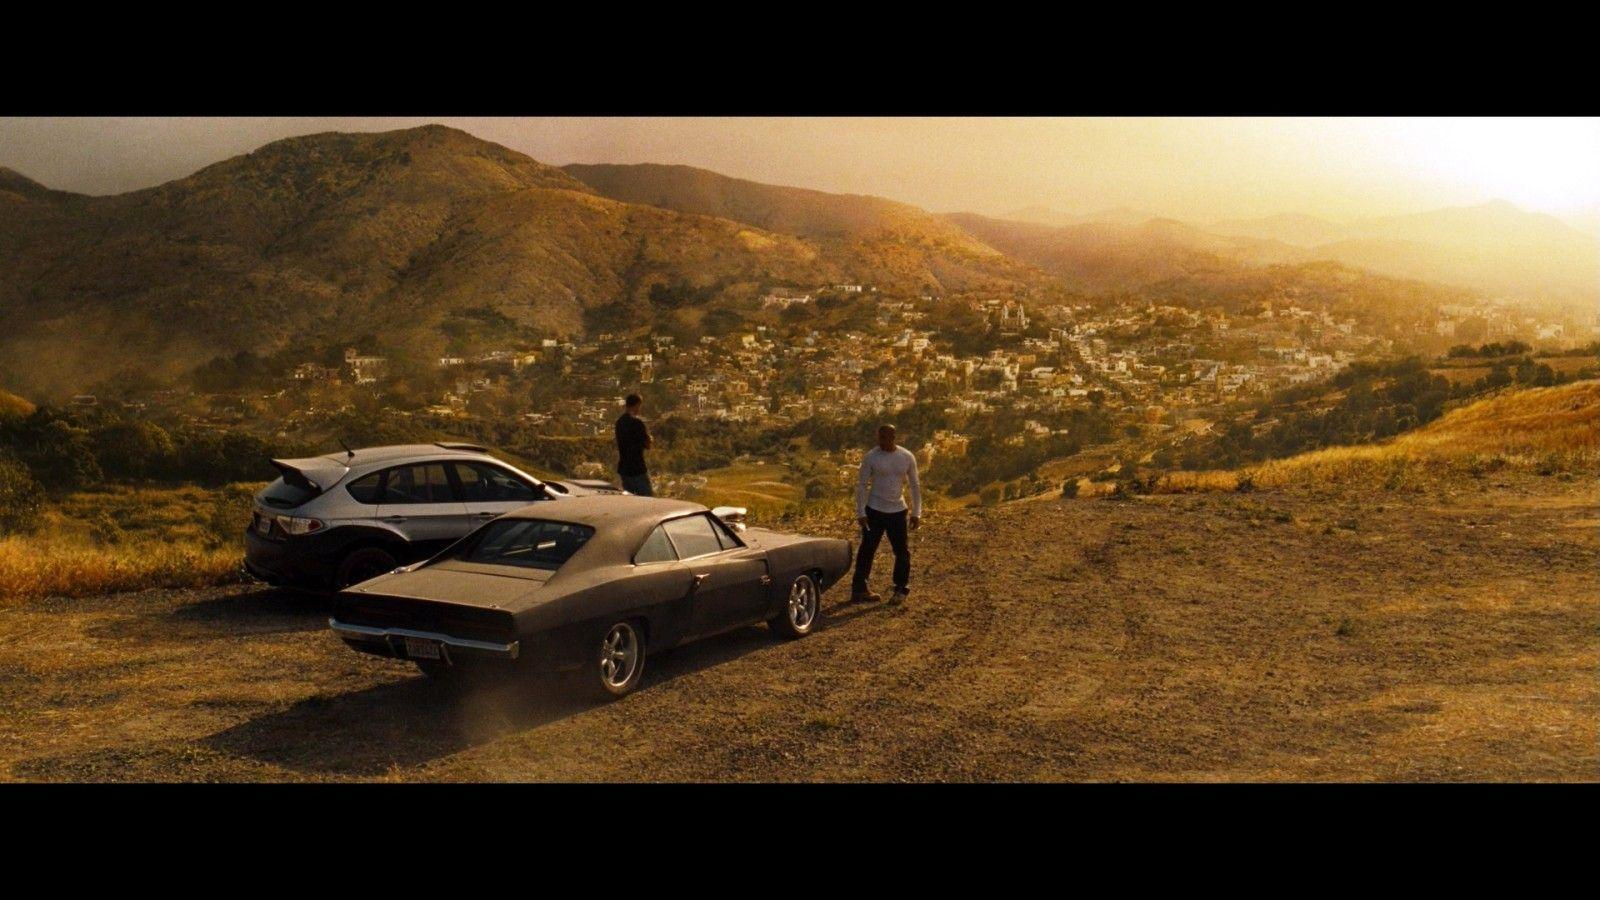 Free download Fast And Furious Wallpapers [1600x900] for your Desktop,  Mobile & Tablet | Explore 76+ Fast And Furious Wallpapers | Furious 7  Wallpaper,